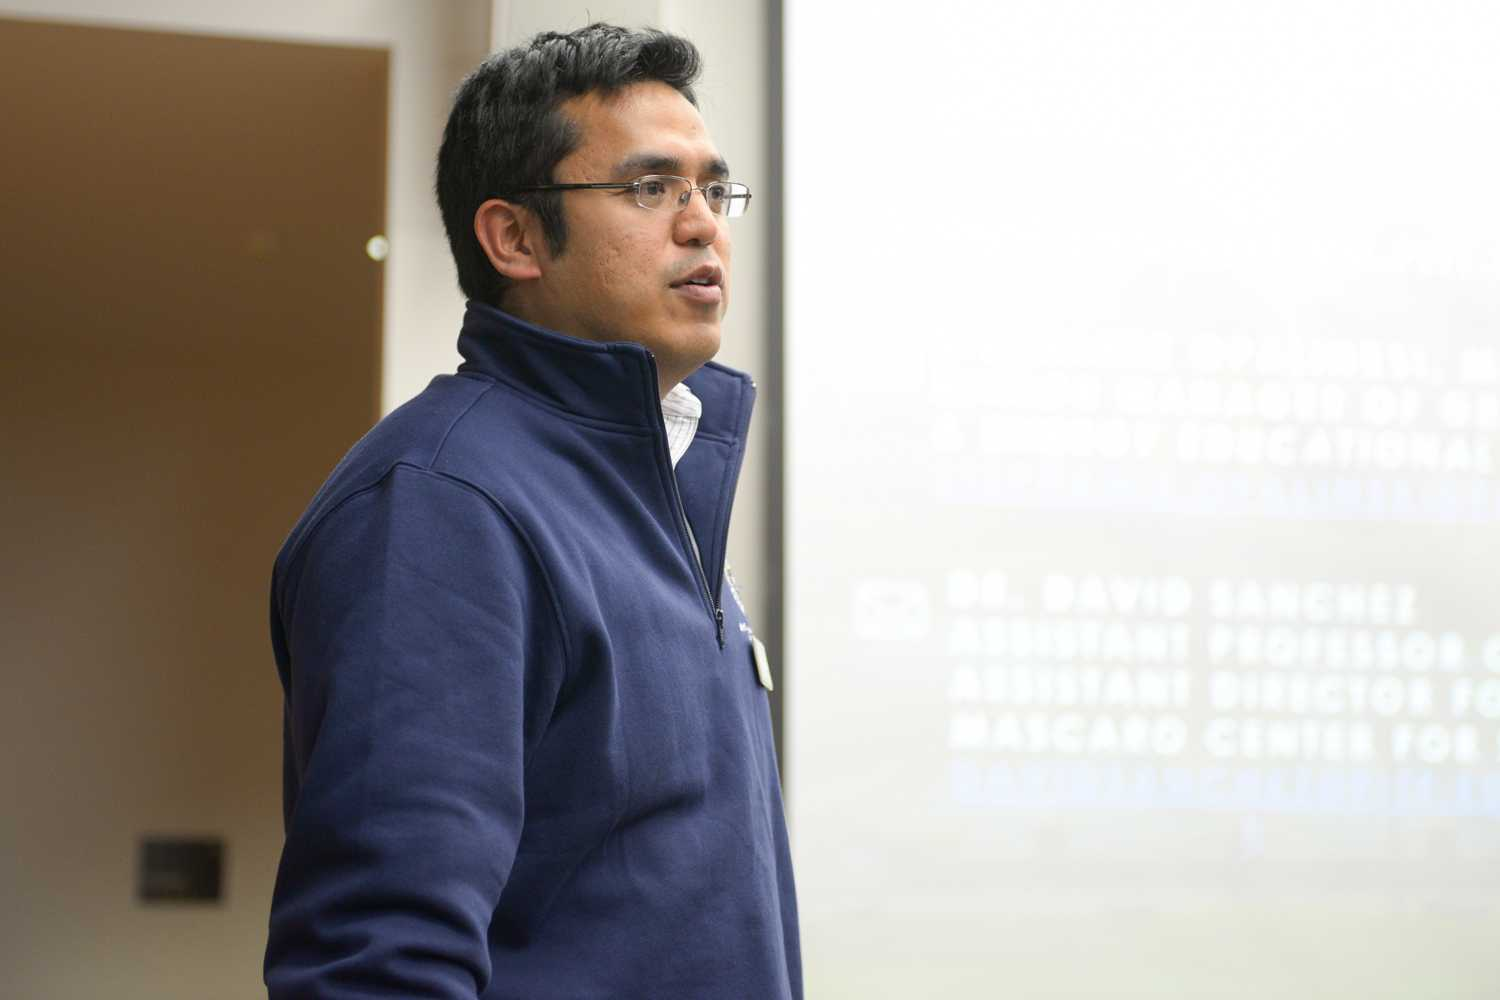 Civil and environmental engineering professor David Sanchez speaks about the new Master of Science in Sustainable Engineering program at Thursday's Sustainable Engineering Graduate Student Information session. (Photo by Chiara Rigaud | Staff Photographer)